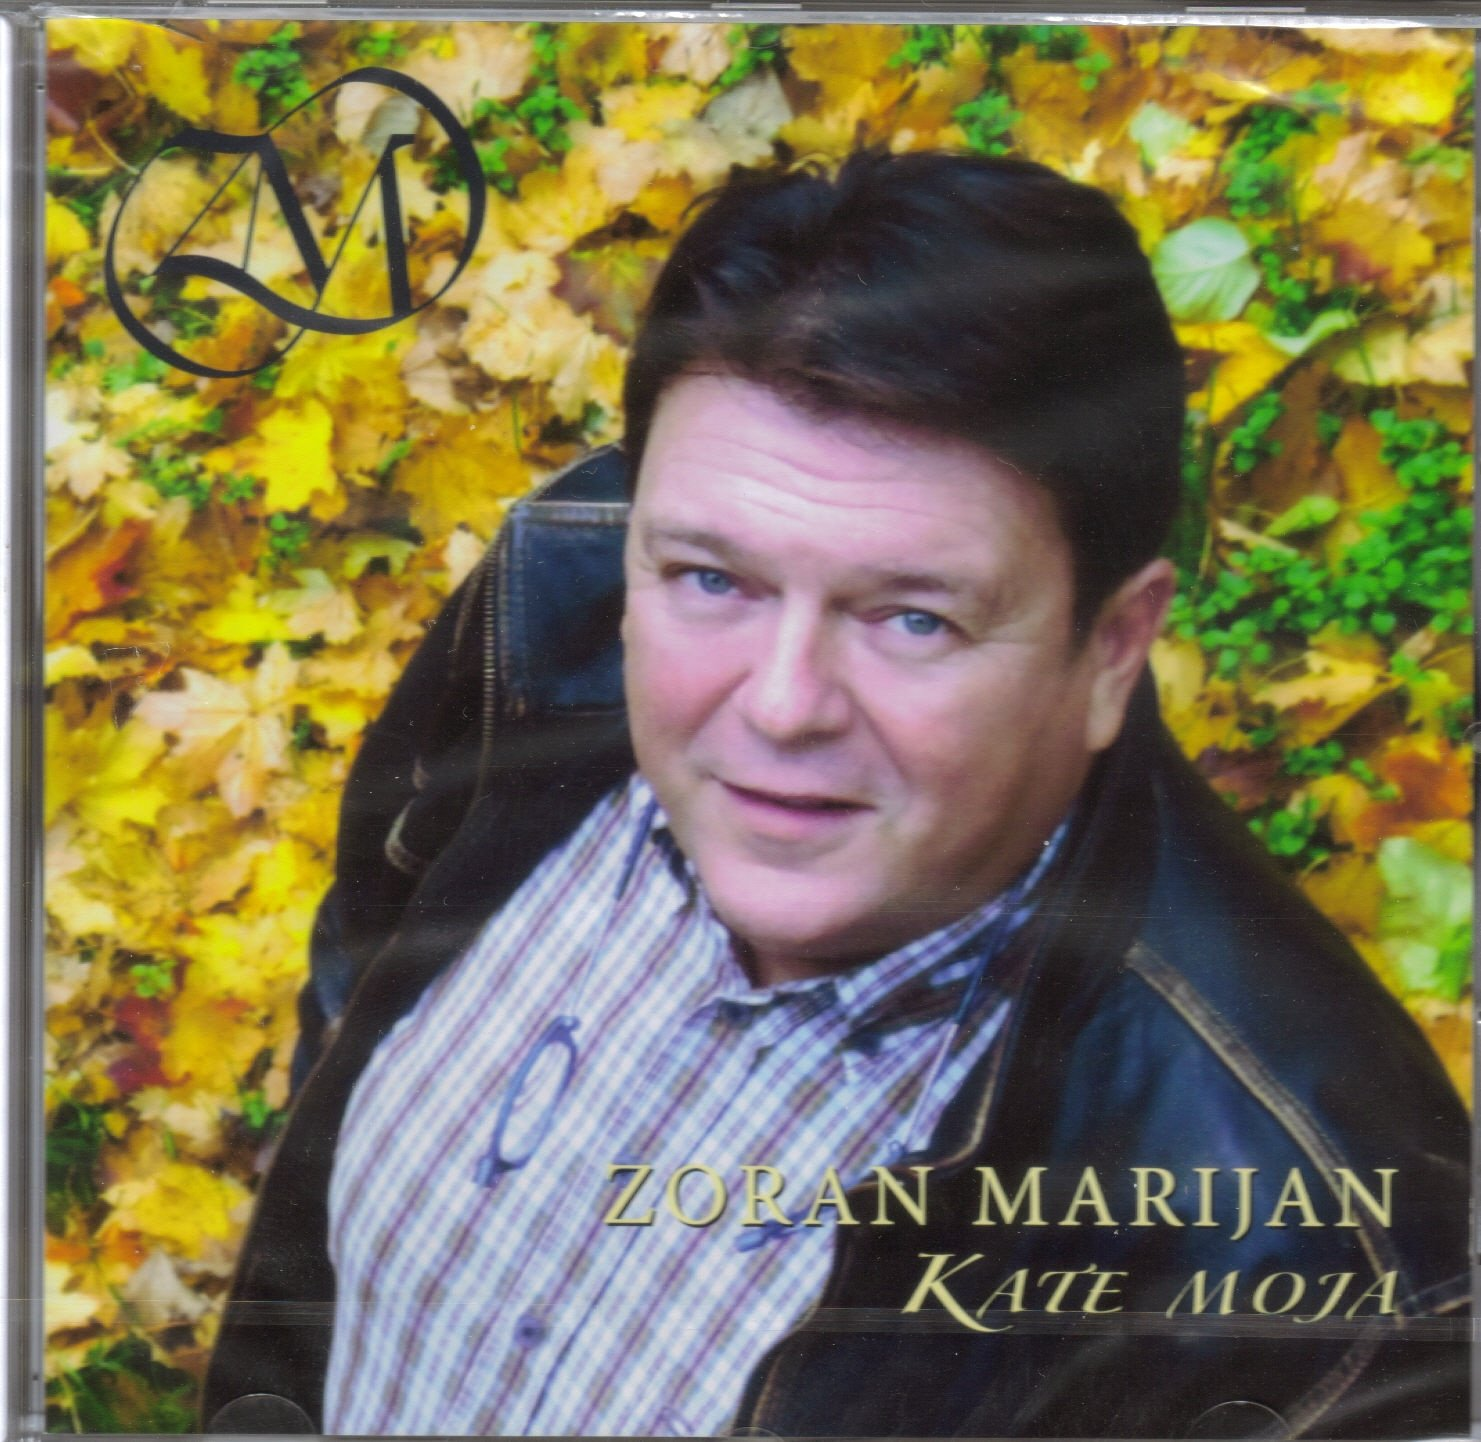 Zoran Marijan Kate Moja Album 2012 Amazon Com Music